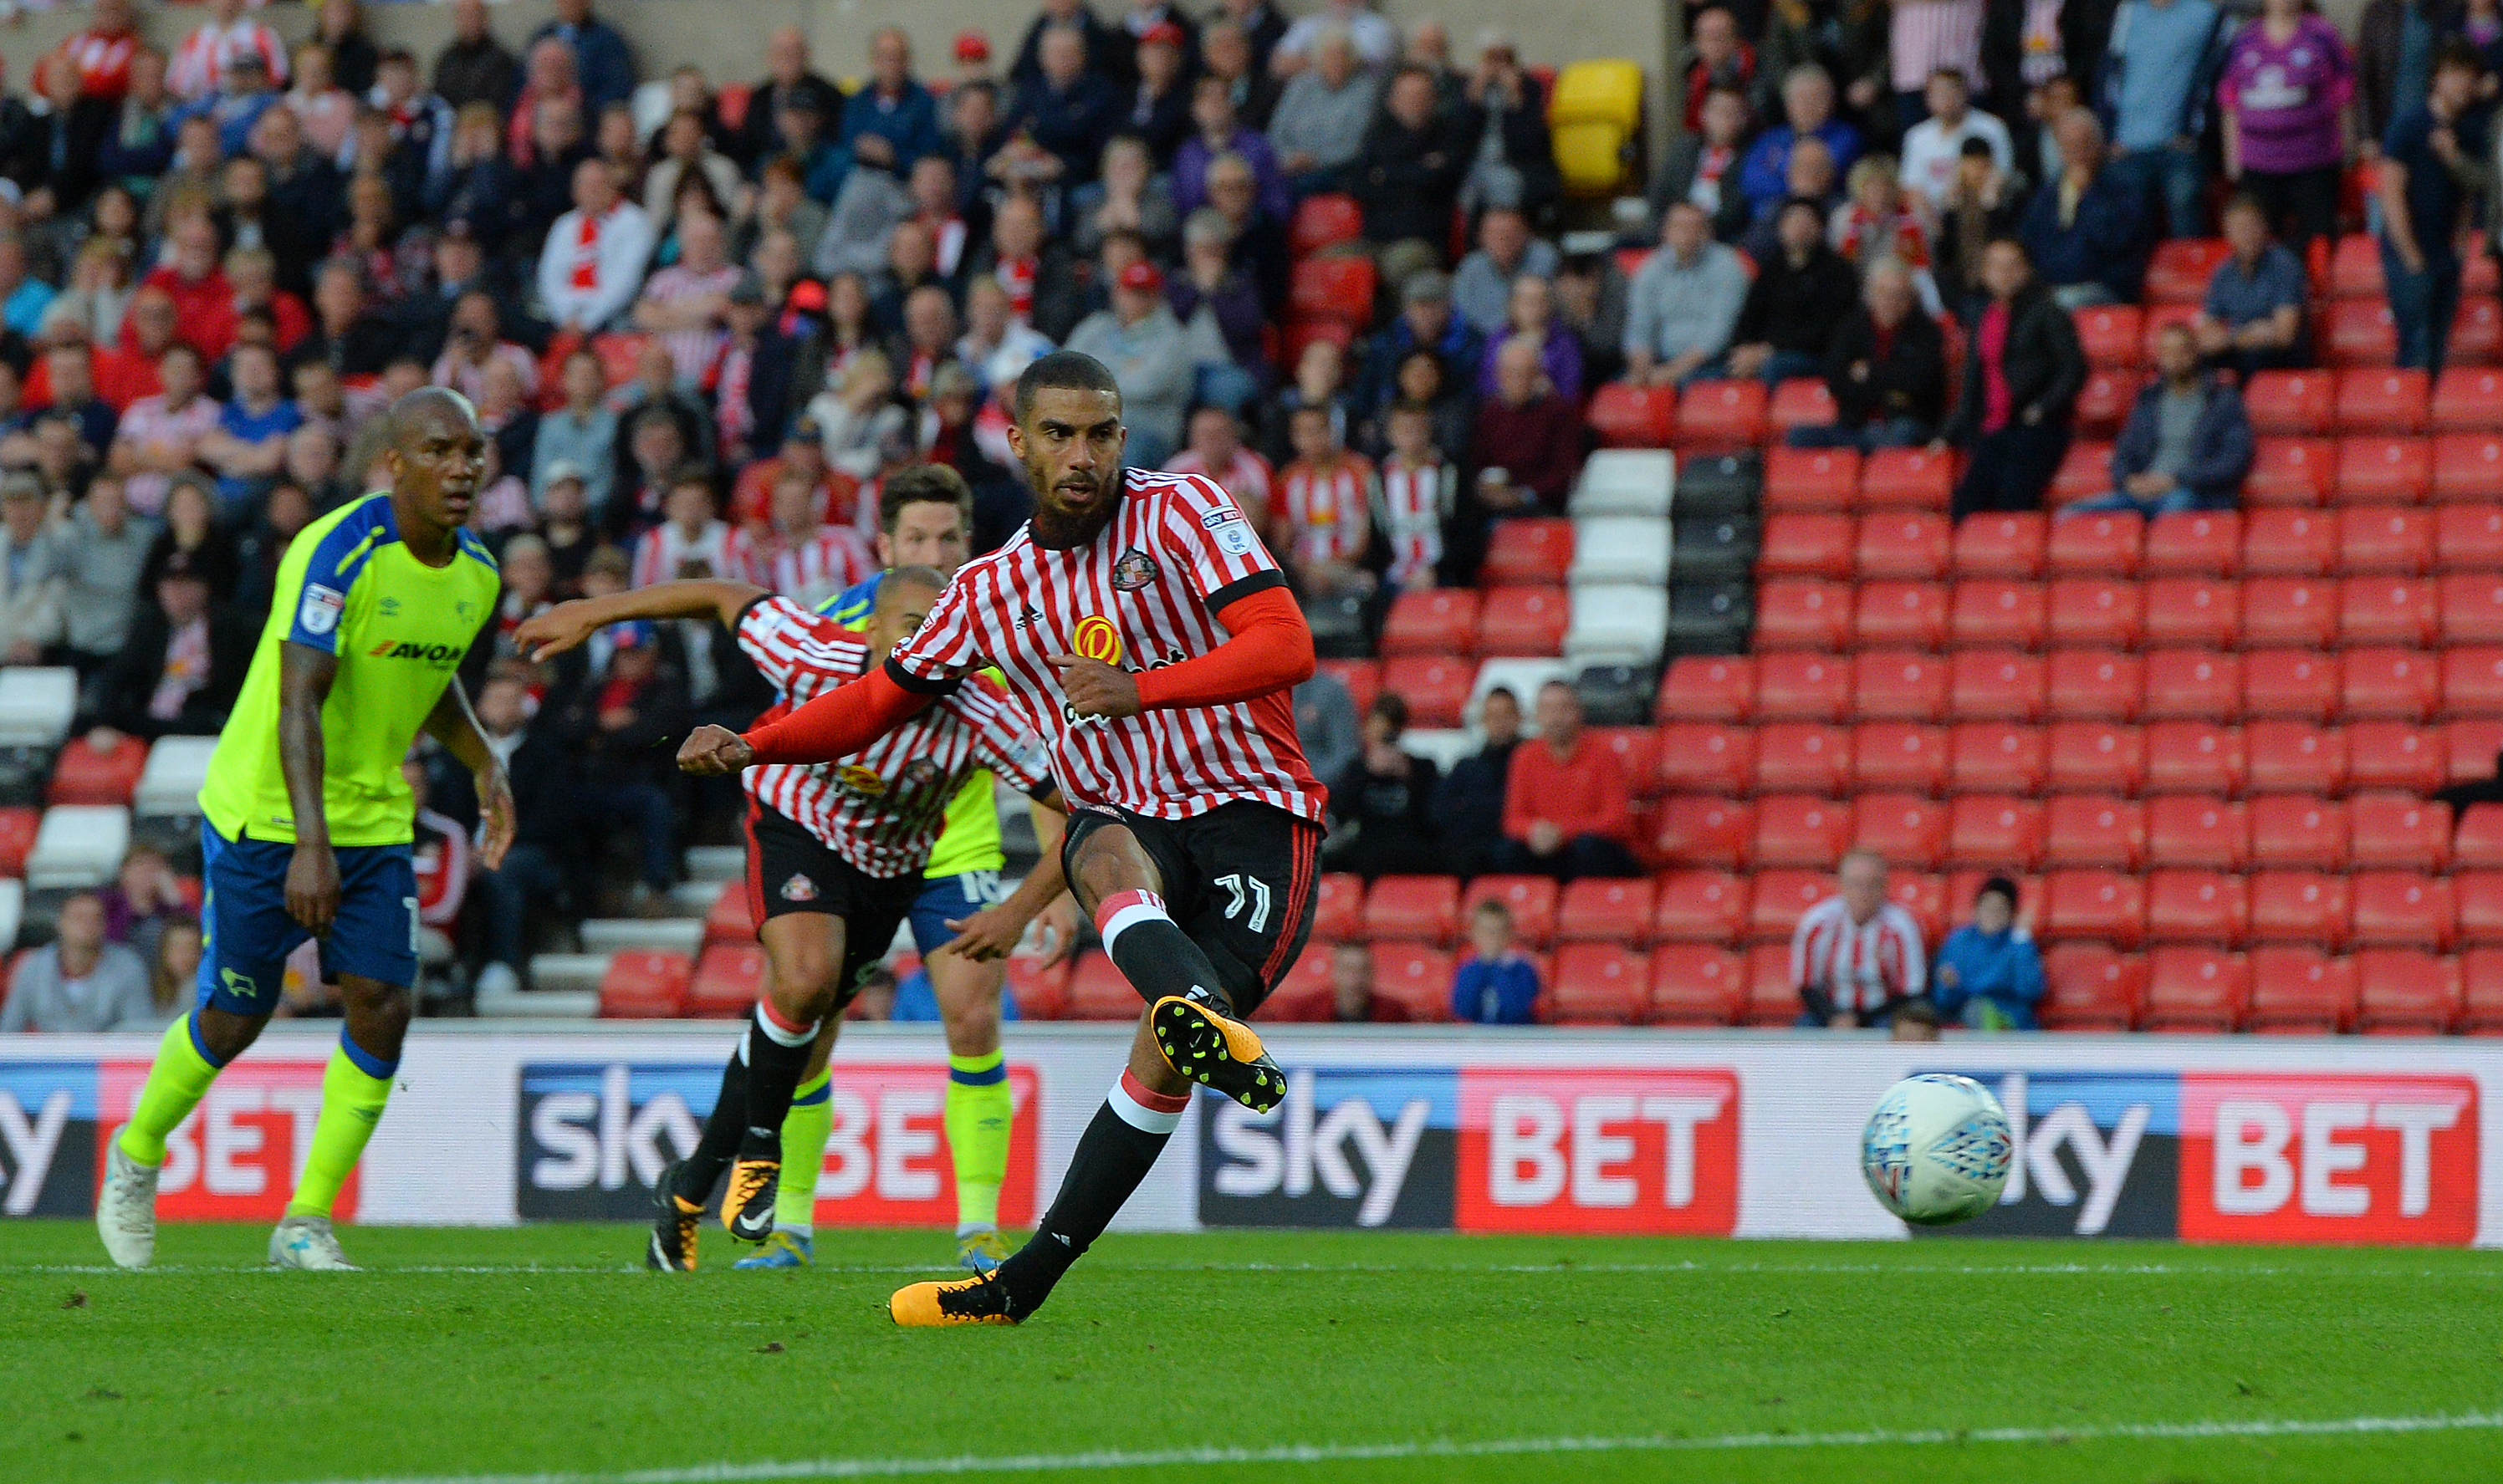 Lewis Grabban scores twice for Sunderland to sink Norwich City